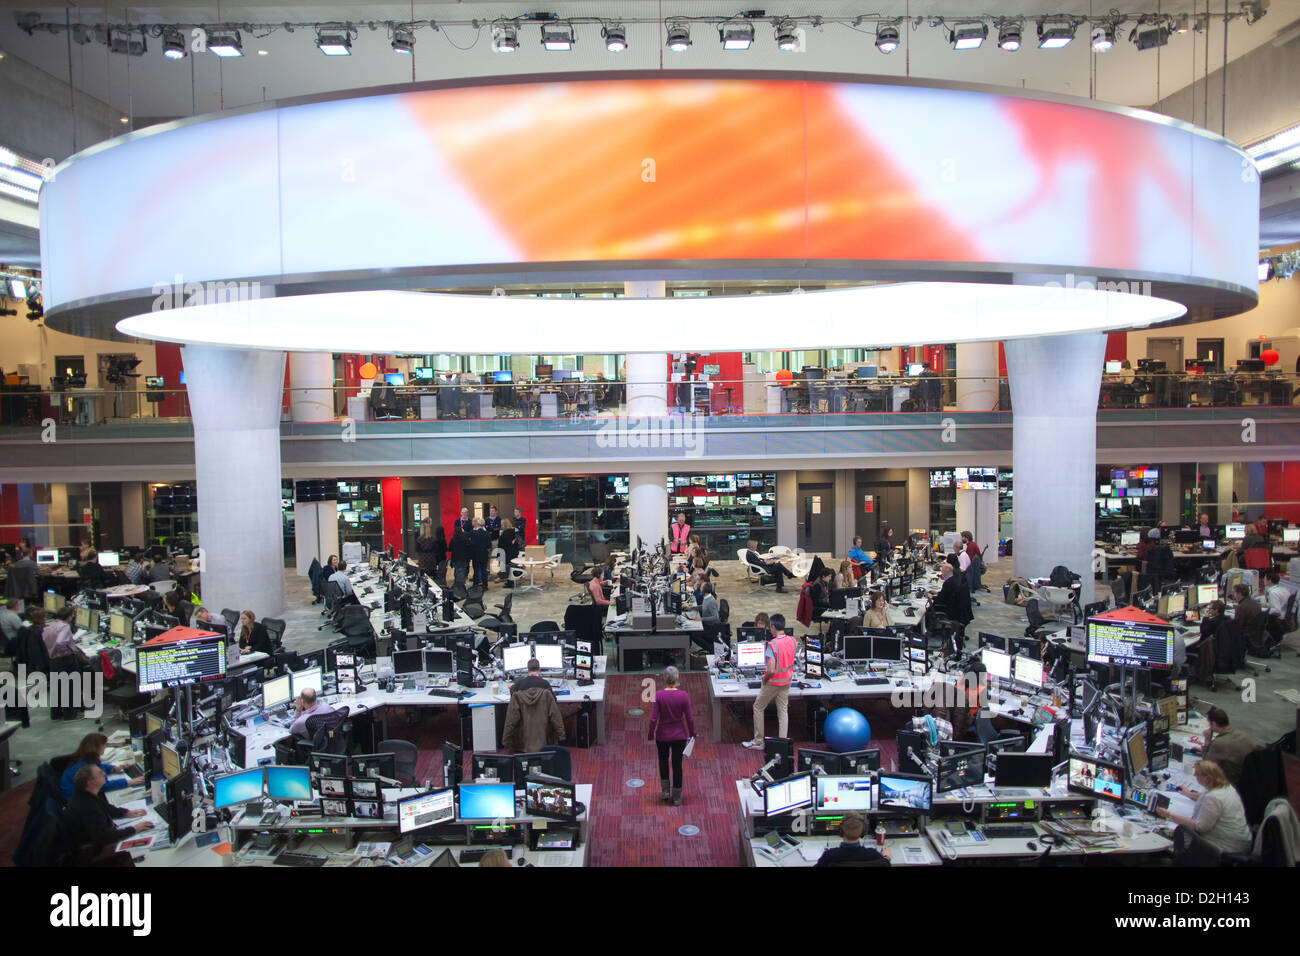 bbc broadcasting house stock photos & bbc broadcasting house stock